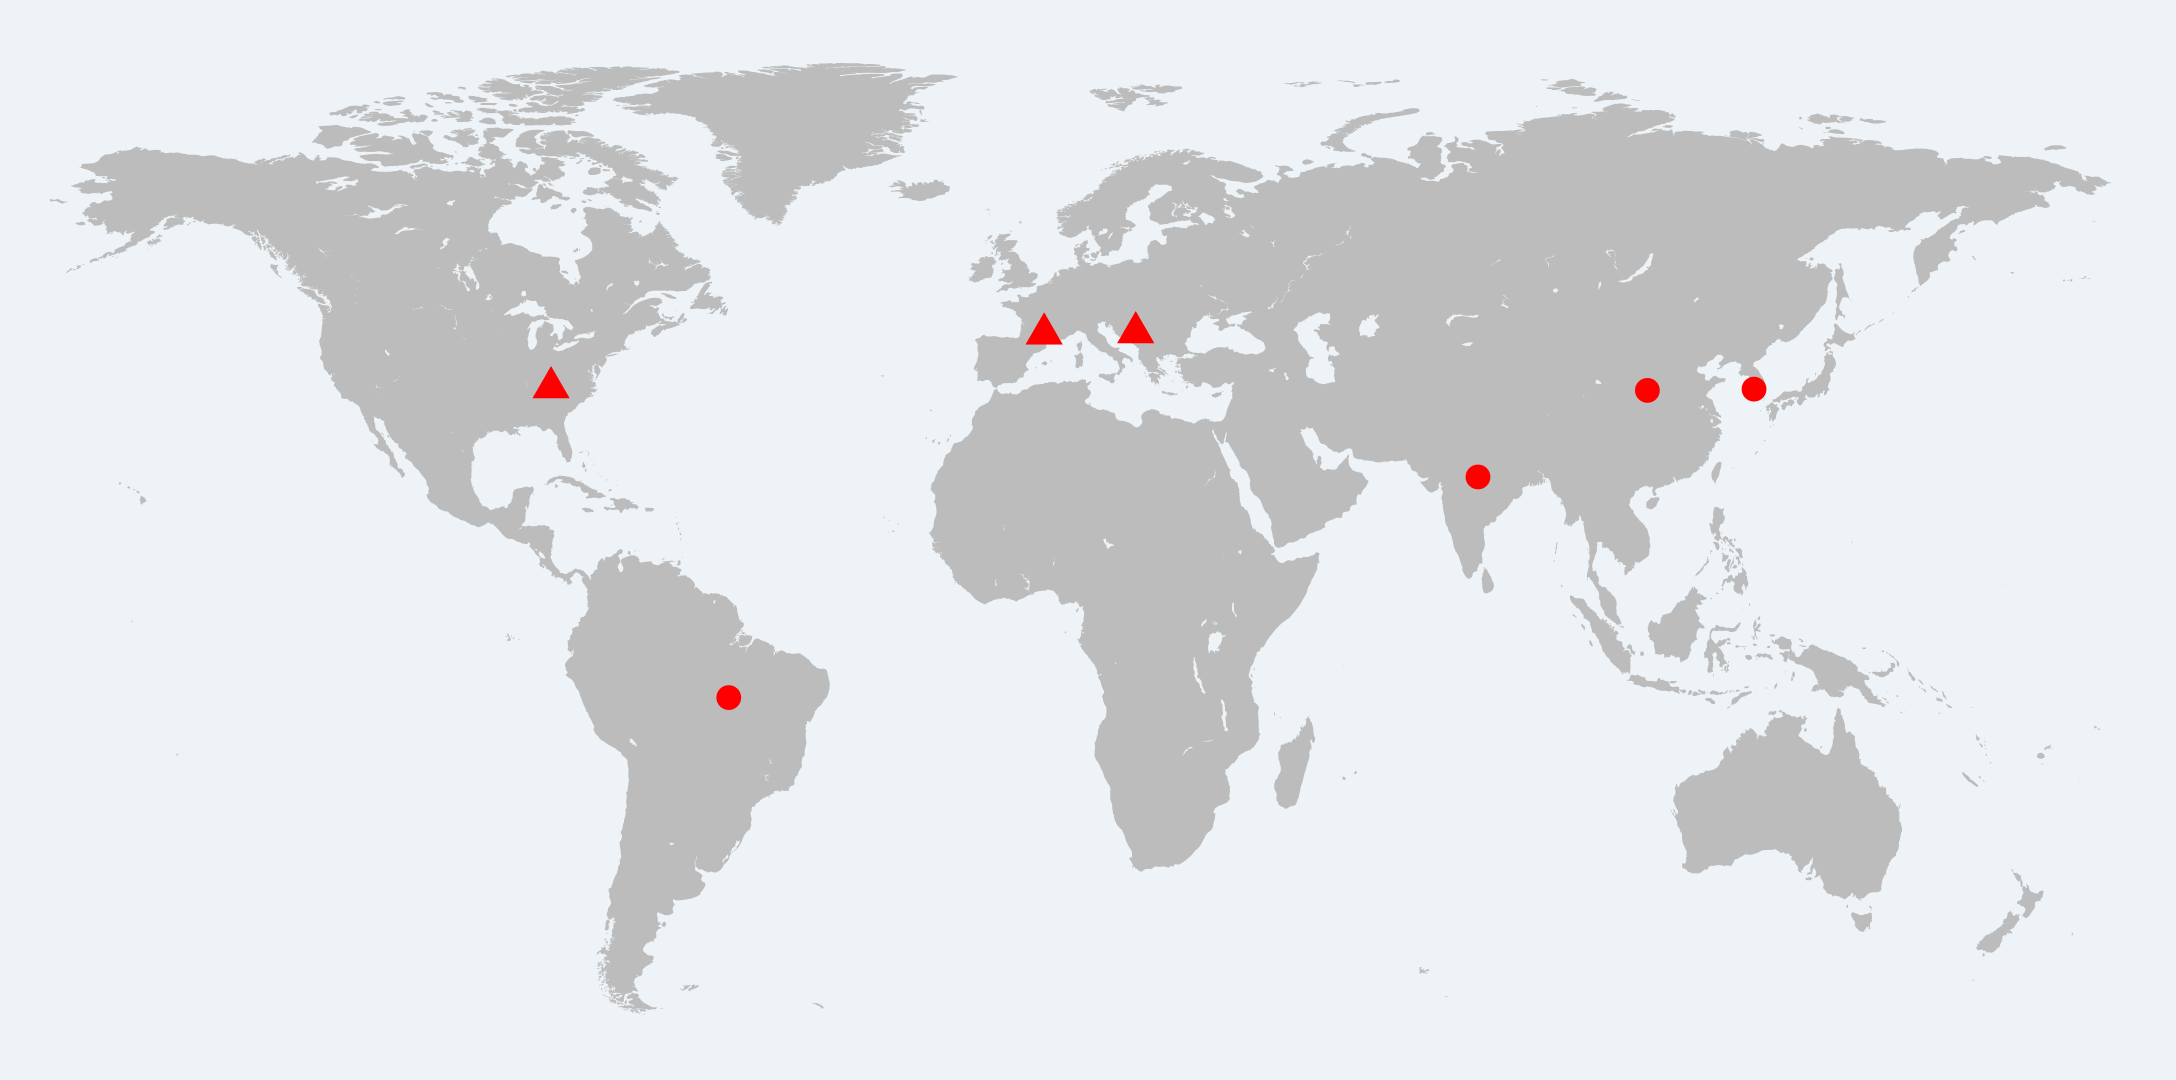 Typhoon HIL Offices and Global Distributors